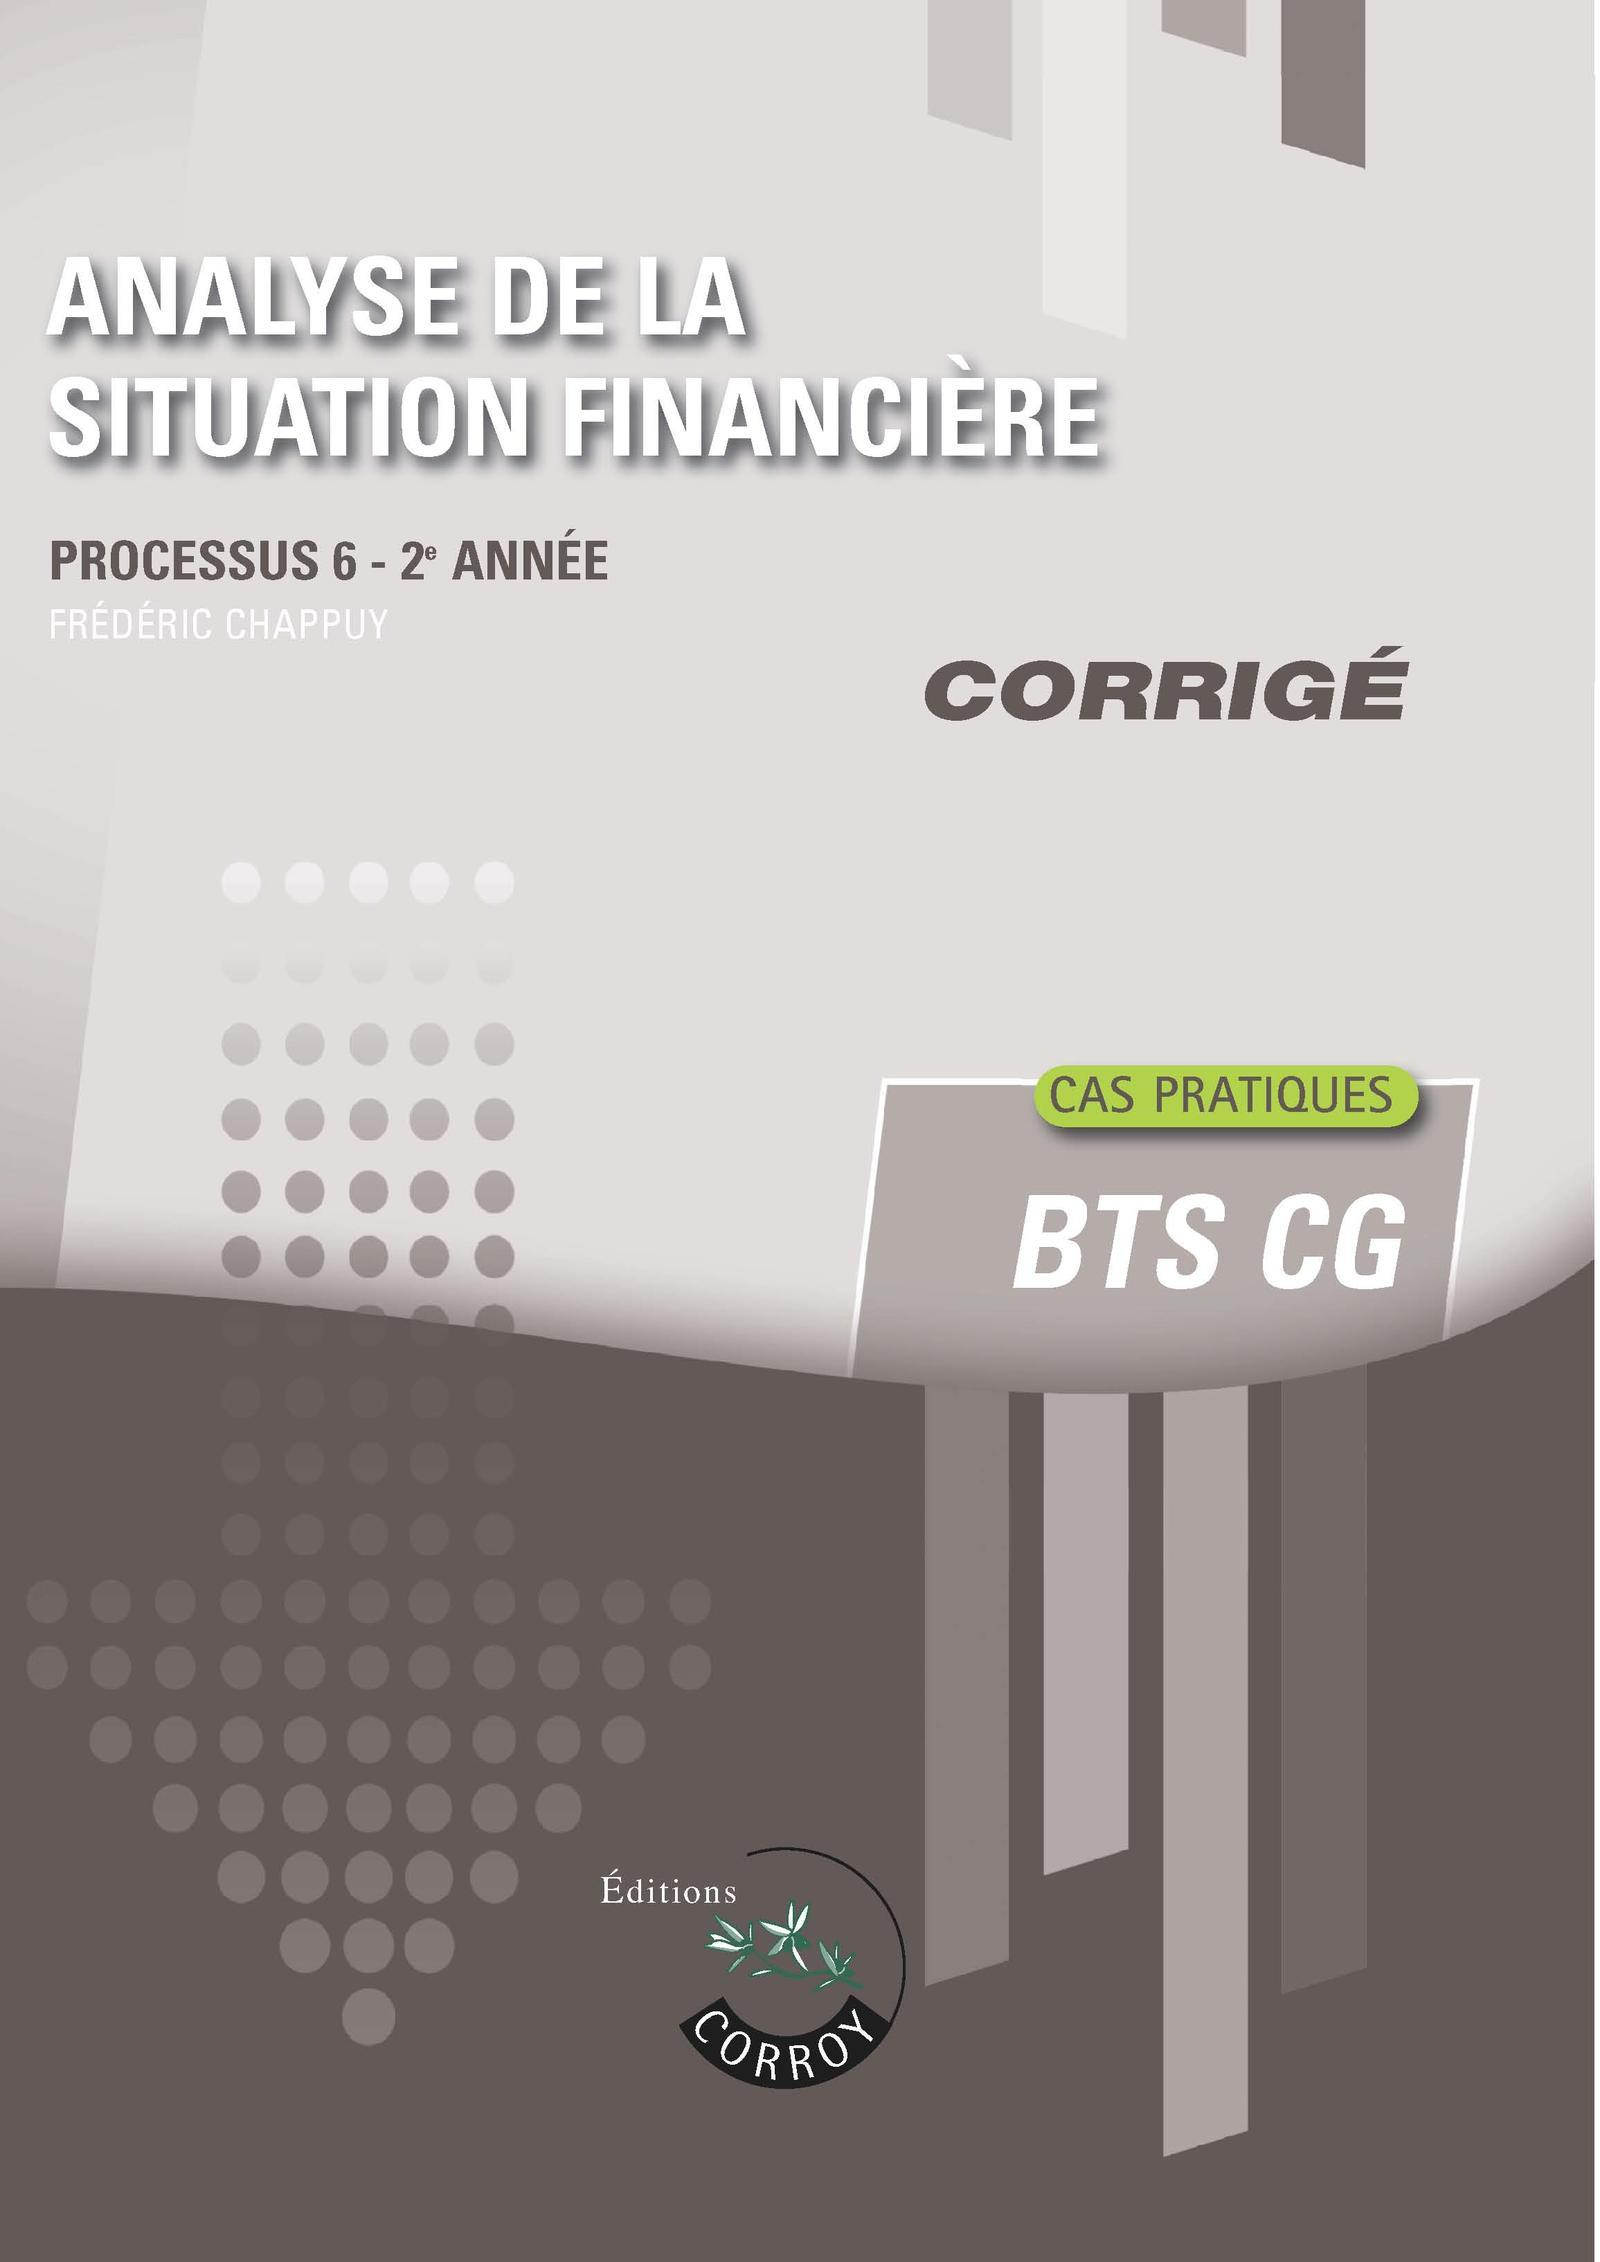 ANALYSE DE LA SITUATION FINANCIERE - CORRIGE